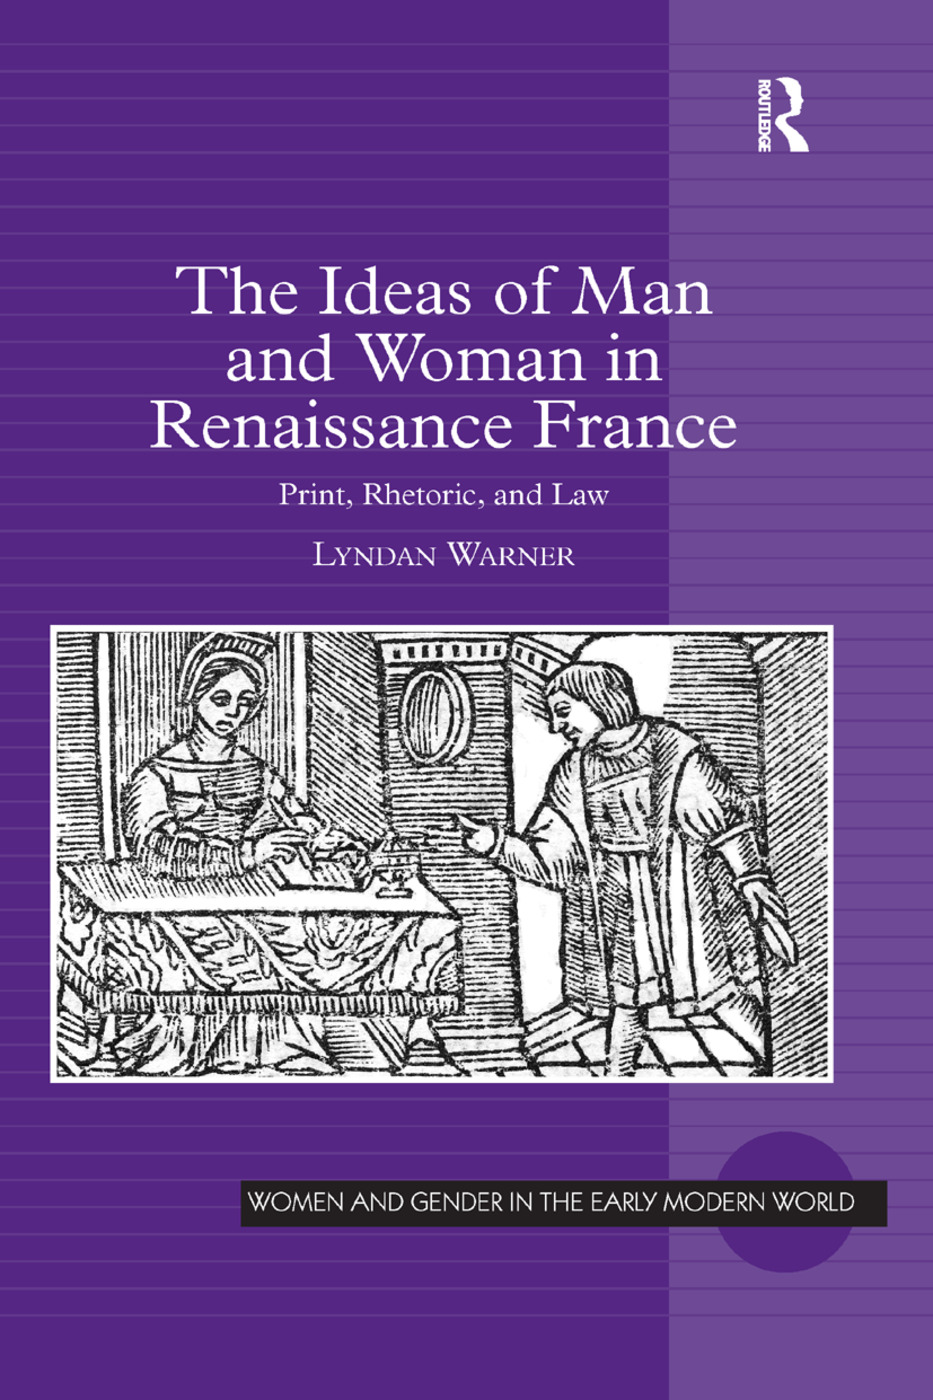 The Ideas of Man and Woman in Renaissance France